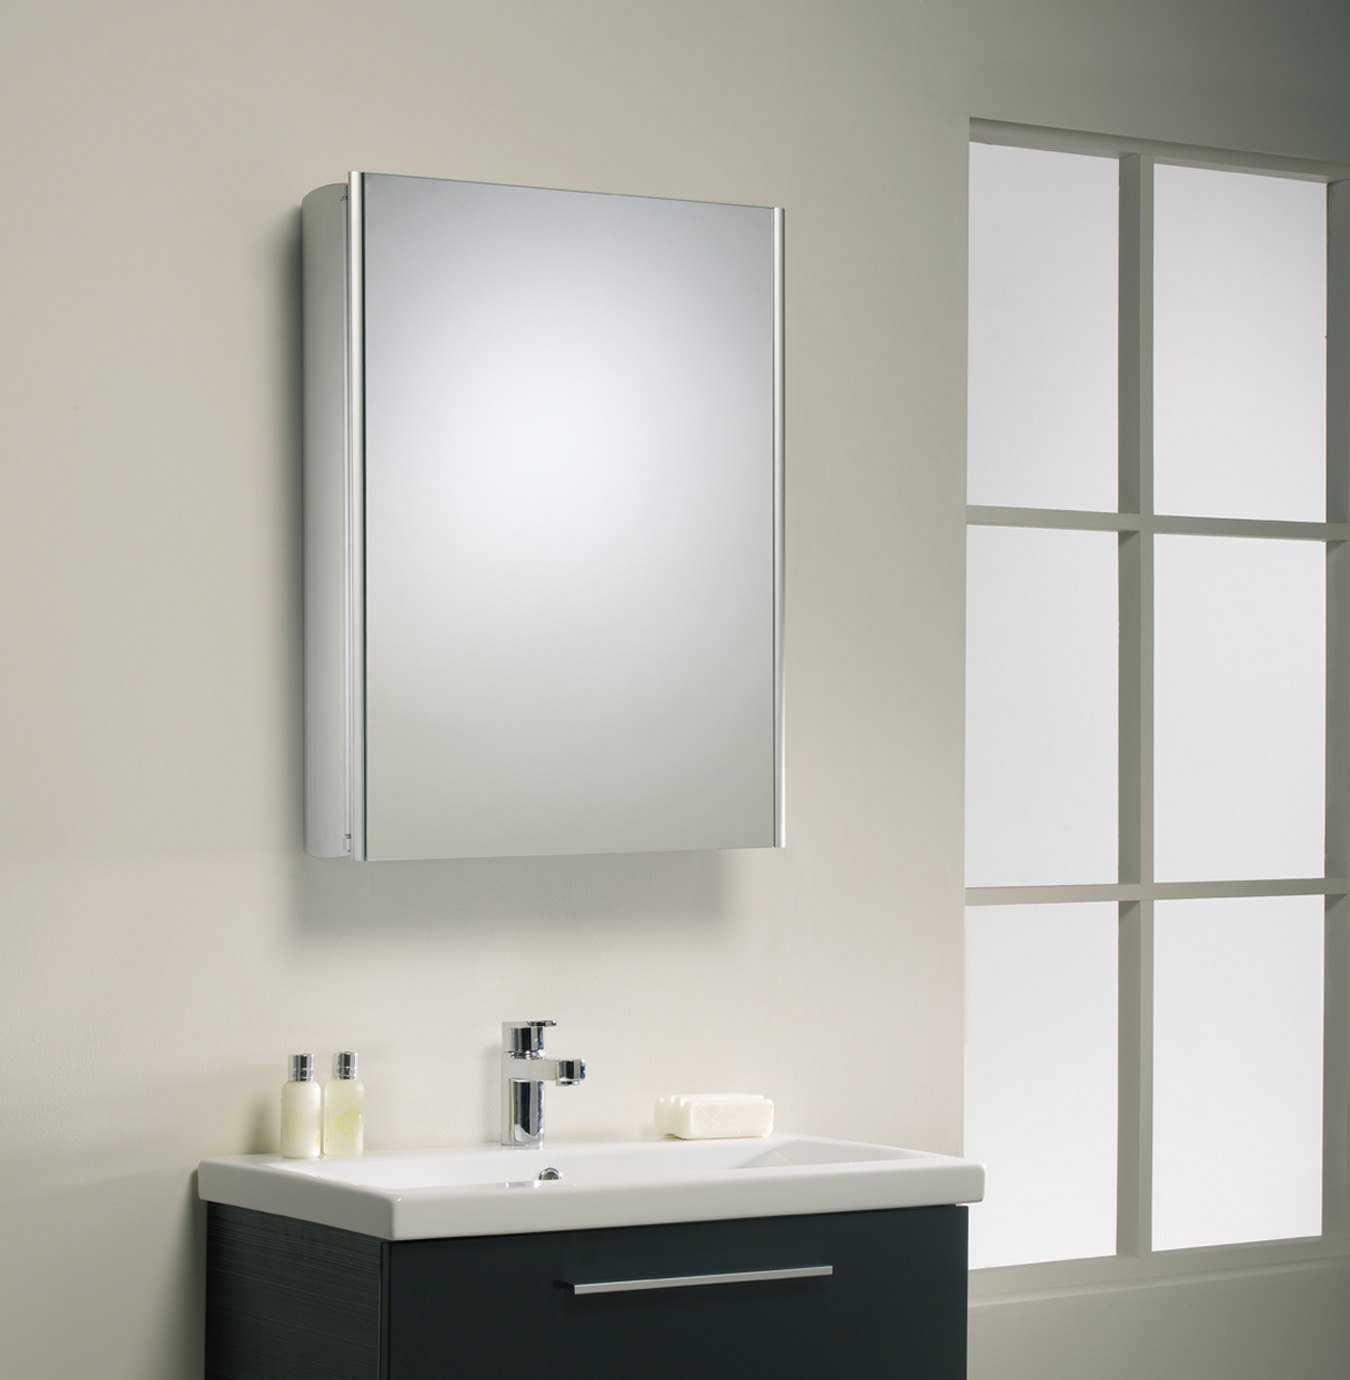 Roper Rhodes Limit Slimline Single Door Mirror Cabinet